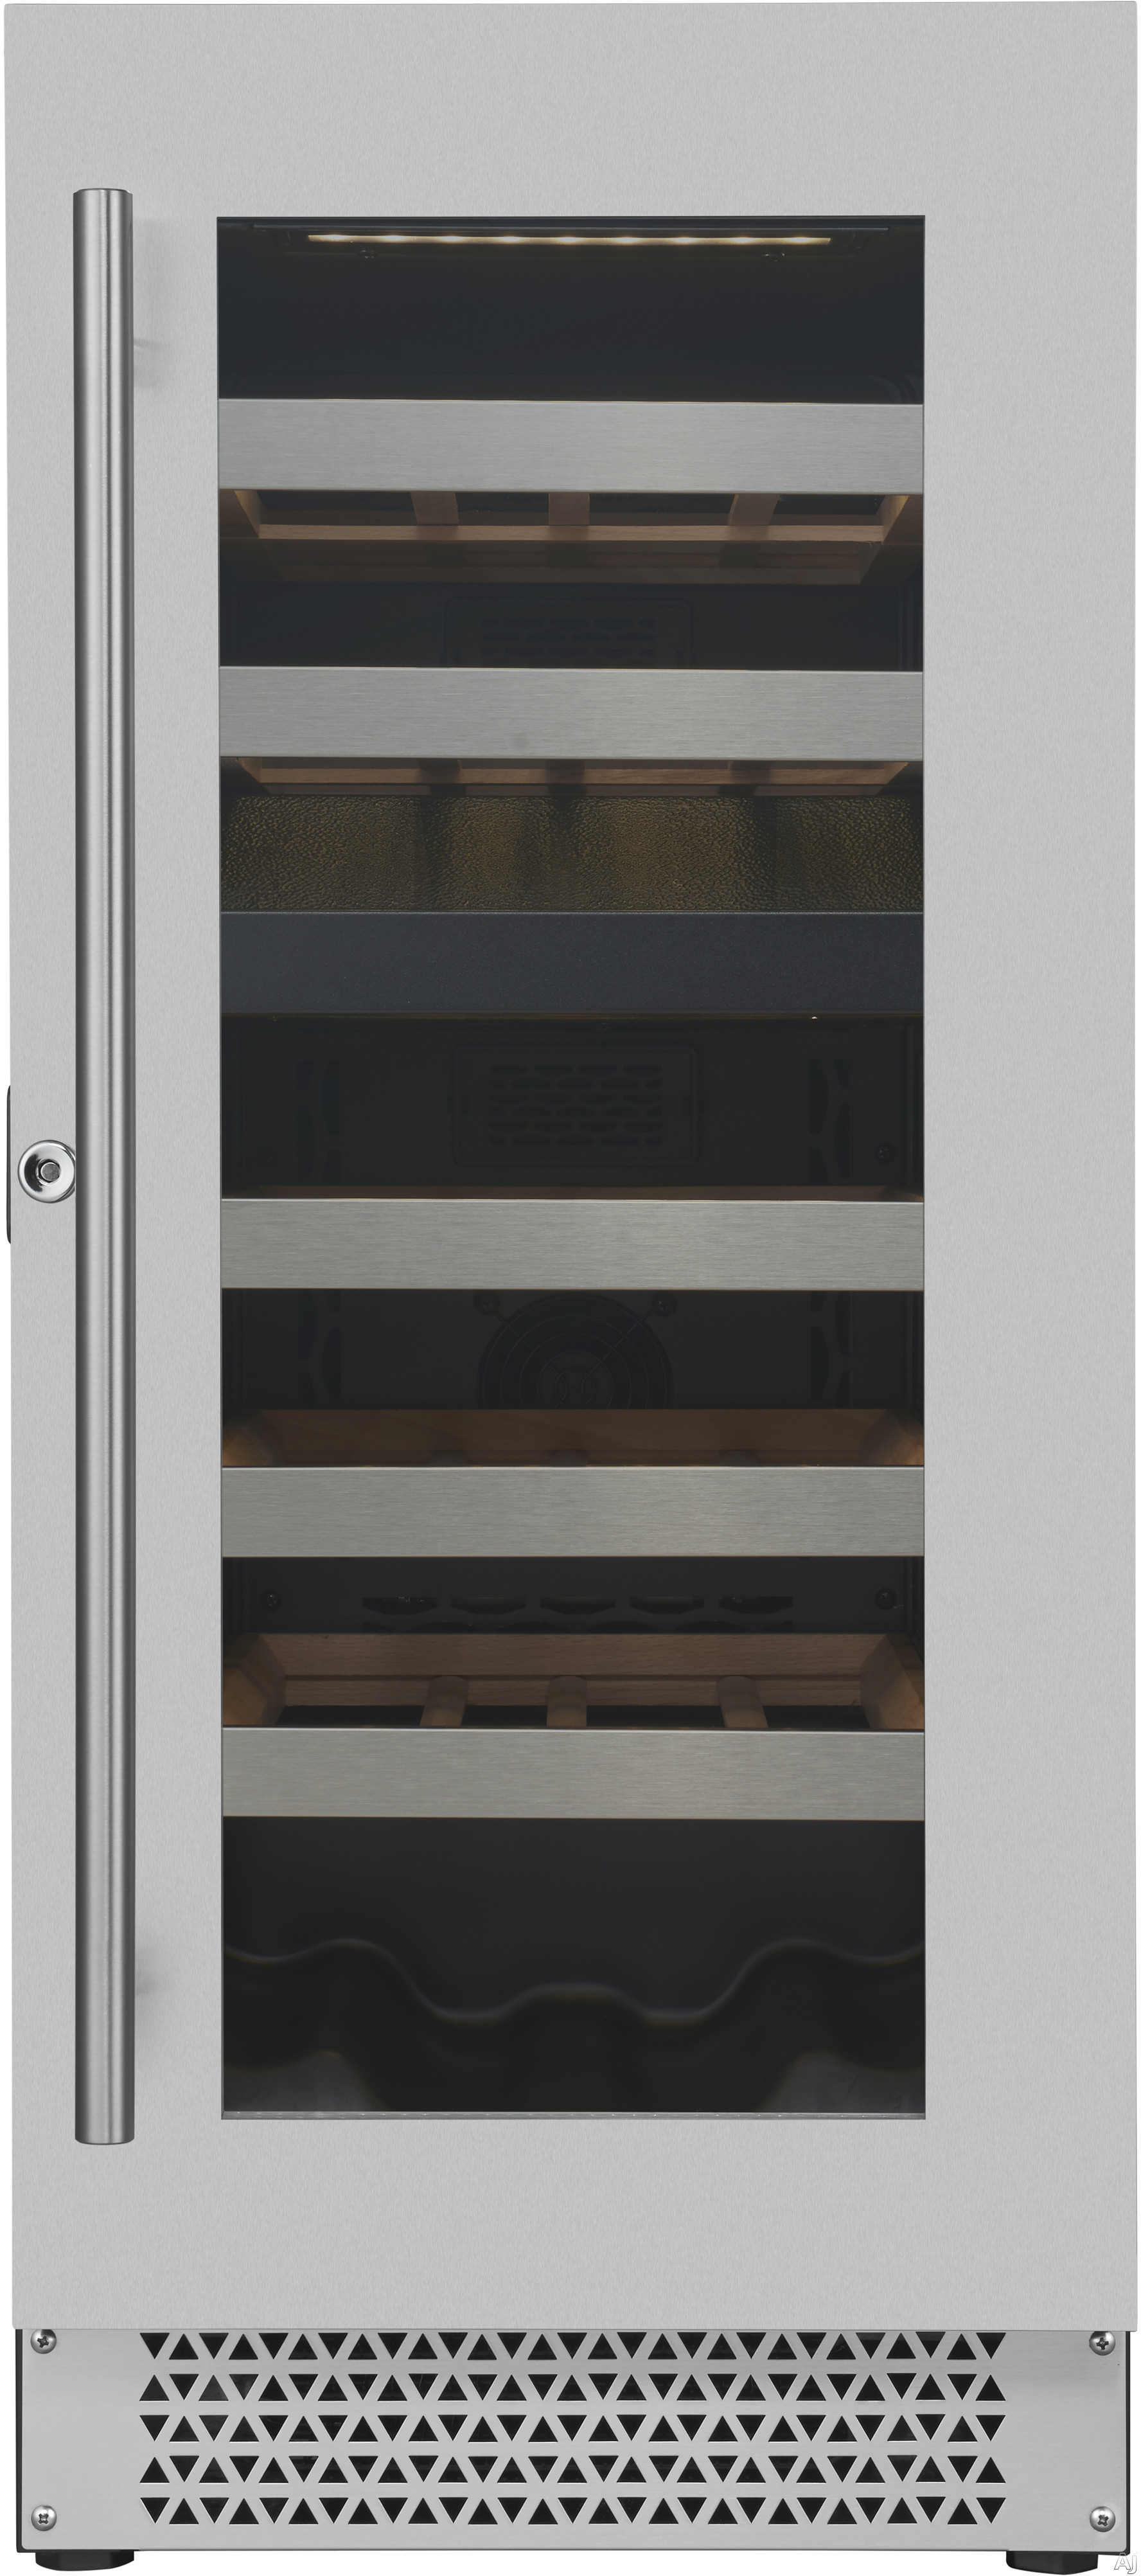 Cavavin V024wdz 15 Inch Counter Depth Wine Cooler With Dual